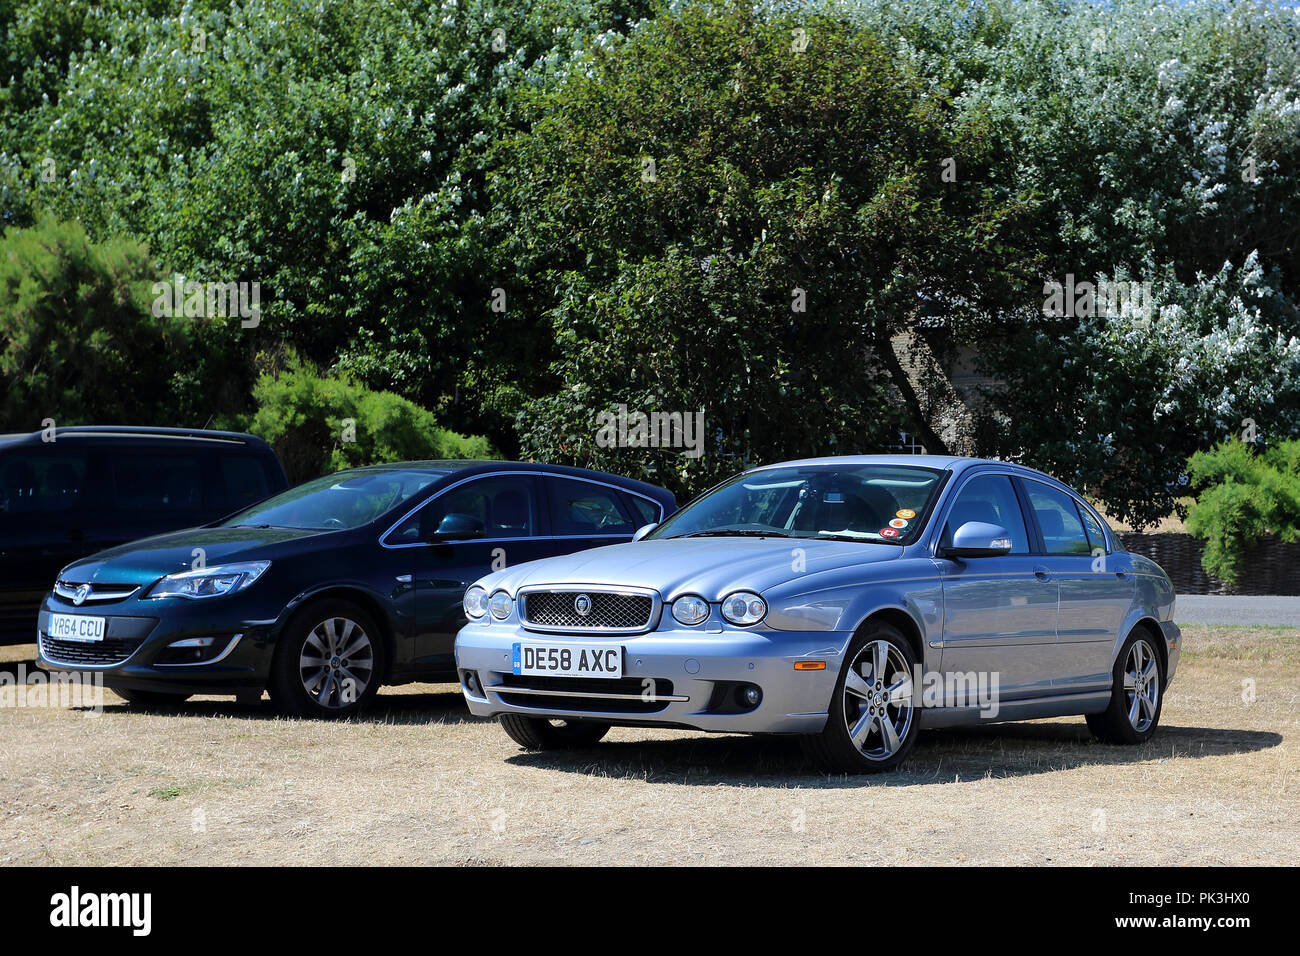 A lilac Jaguar X-Type stands in a car park next to a blue Vauxhall car. - Stock Image